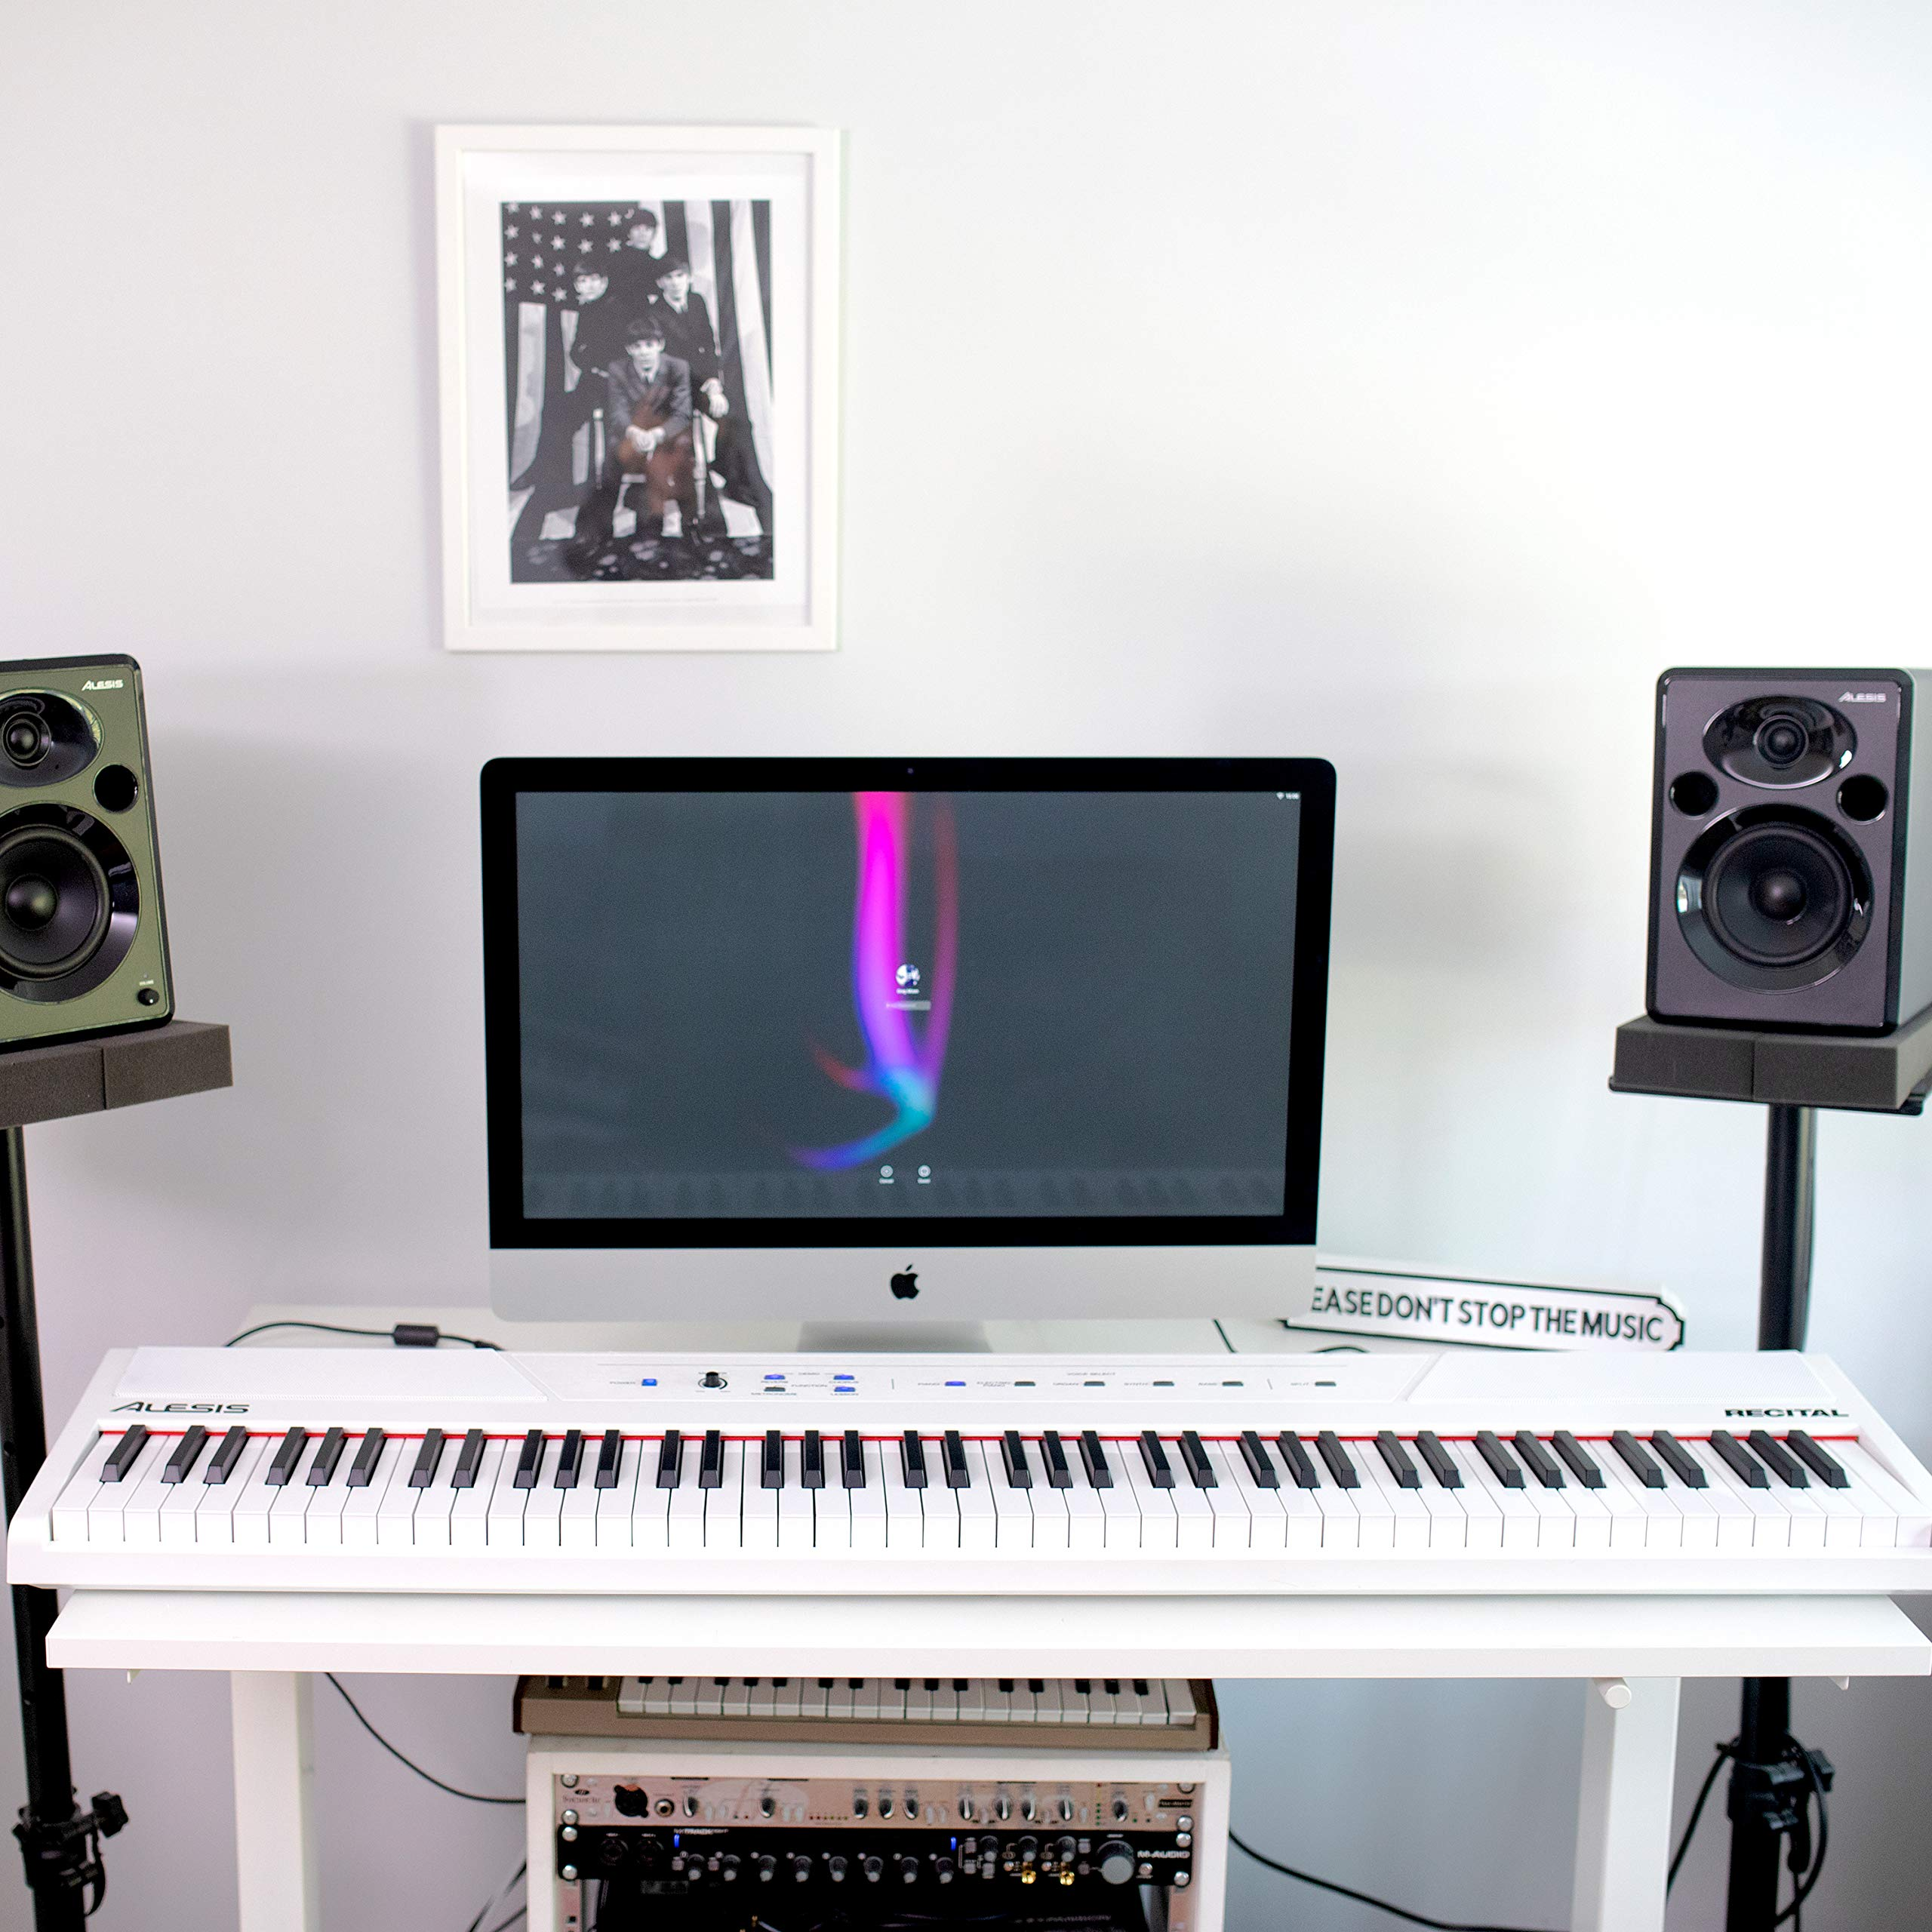 Alesis Recital White | 88-Key Digital Piano / Electronic Keyboard with Full-Size Semi-Weighted Keys, Power Supply, Built-In Speakers and 5 Premium Voices by Alesis (Image #15)